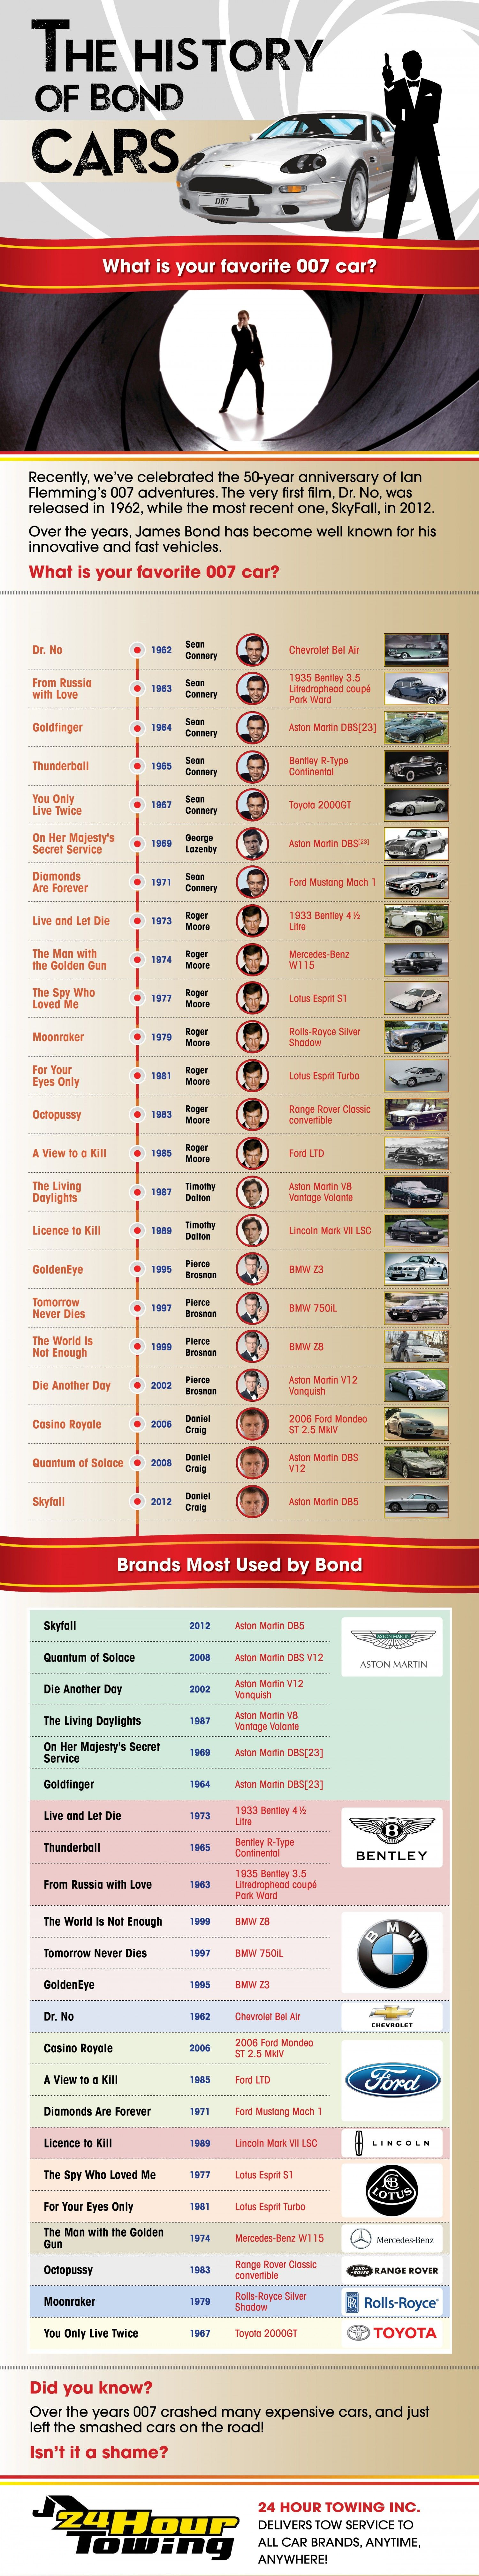 The History Of Bond Cars   #Infographic #cars #JamesBond